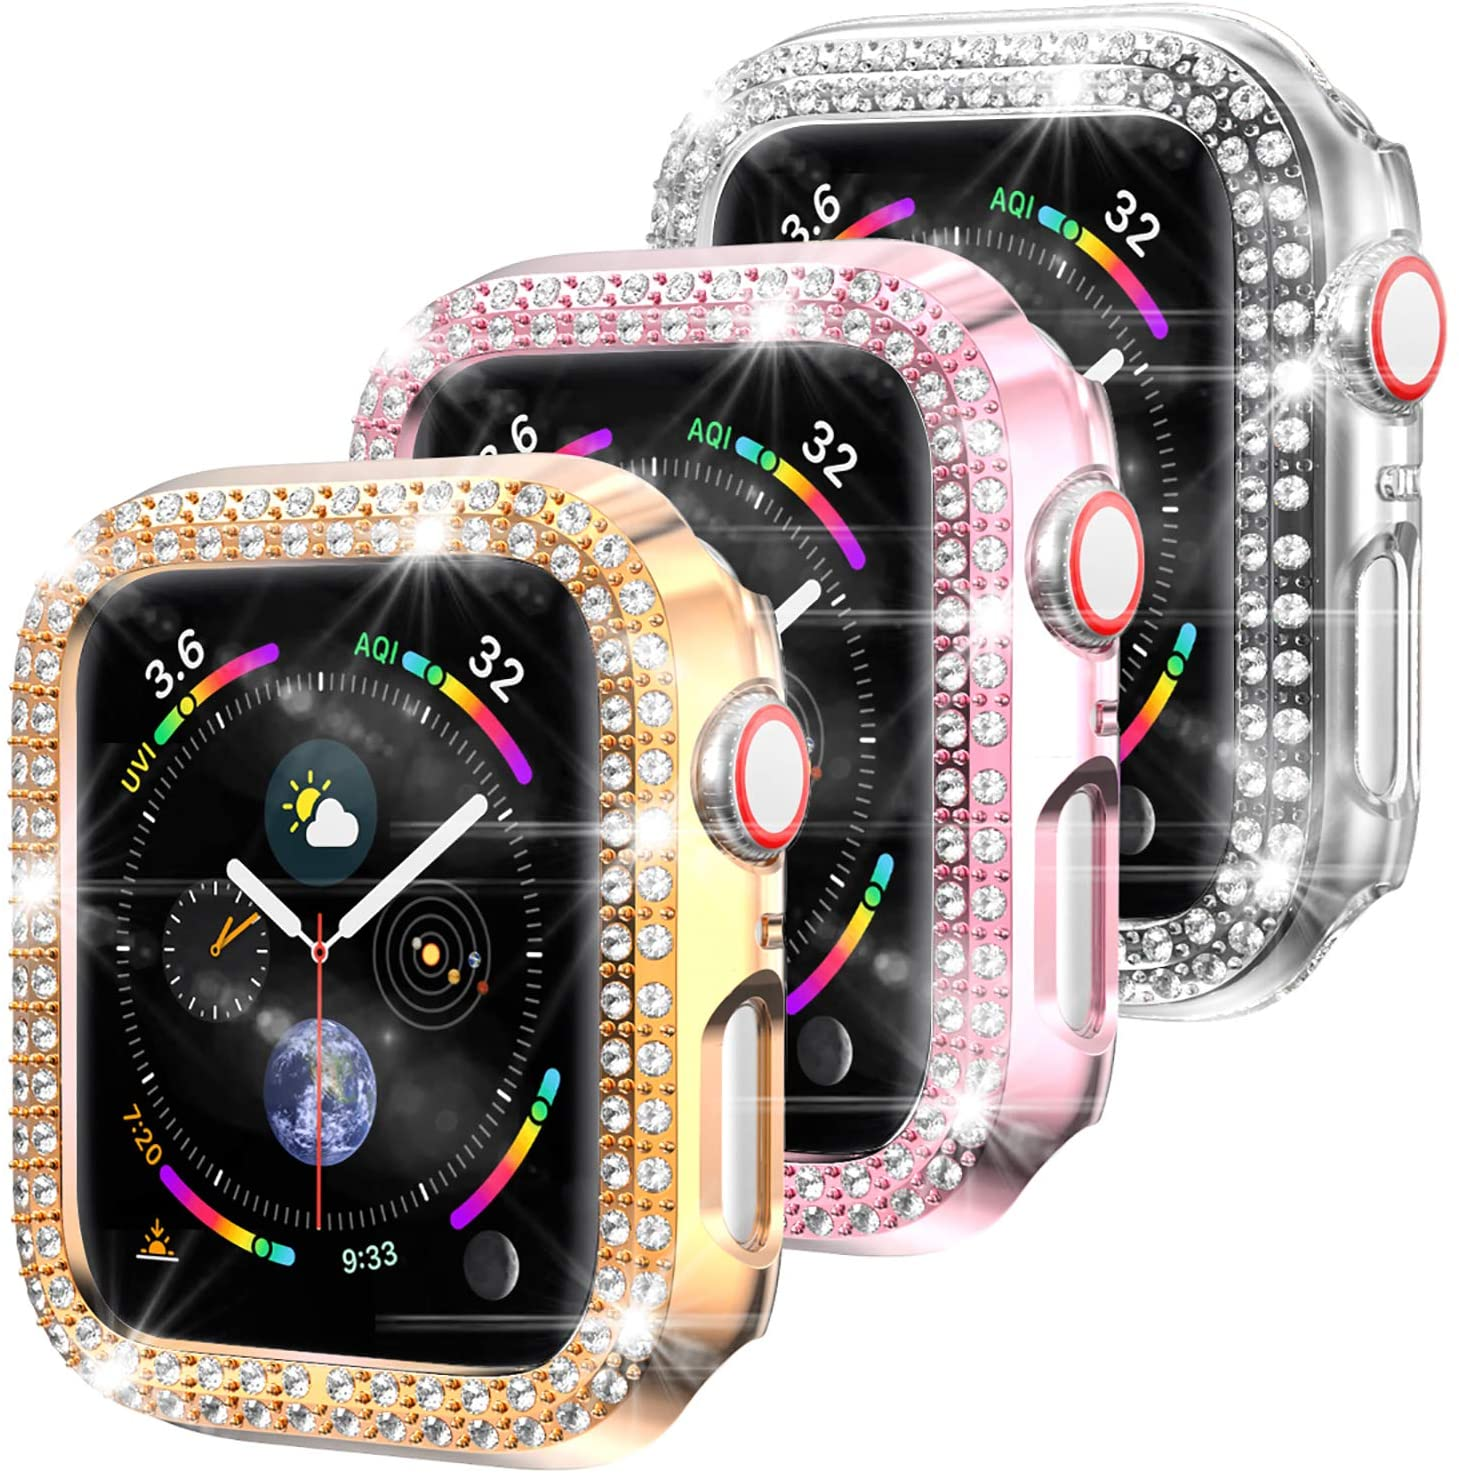 3 Pack-Bharvest Compatible Apple Watch Series 3 and 2 Case 38mm,Protective PC Bumper Cover Bling Crystal Diamond Frame Iwatch Accessories for Women and Girls(Rose+Pink+Clear)